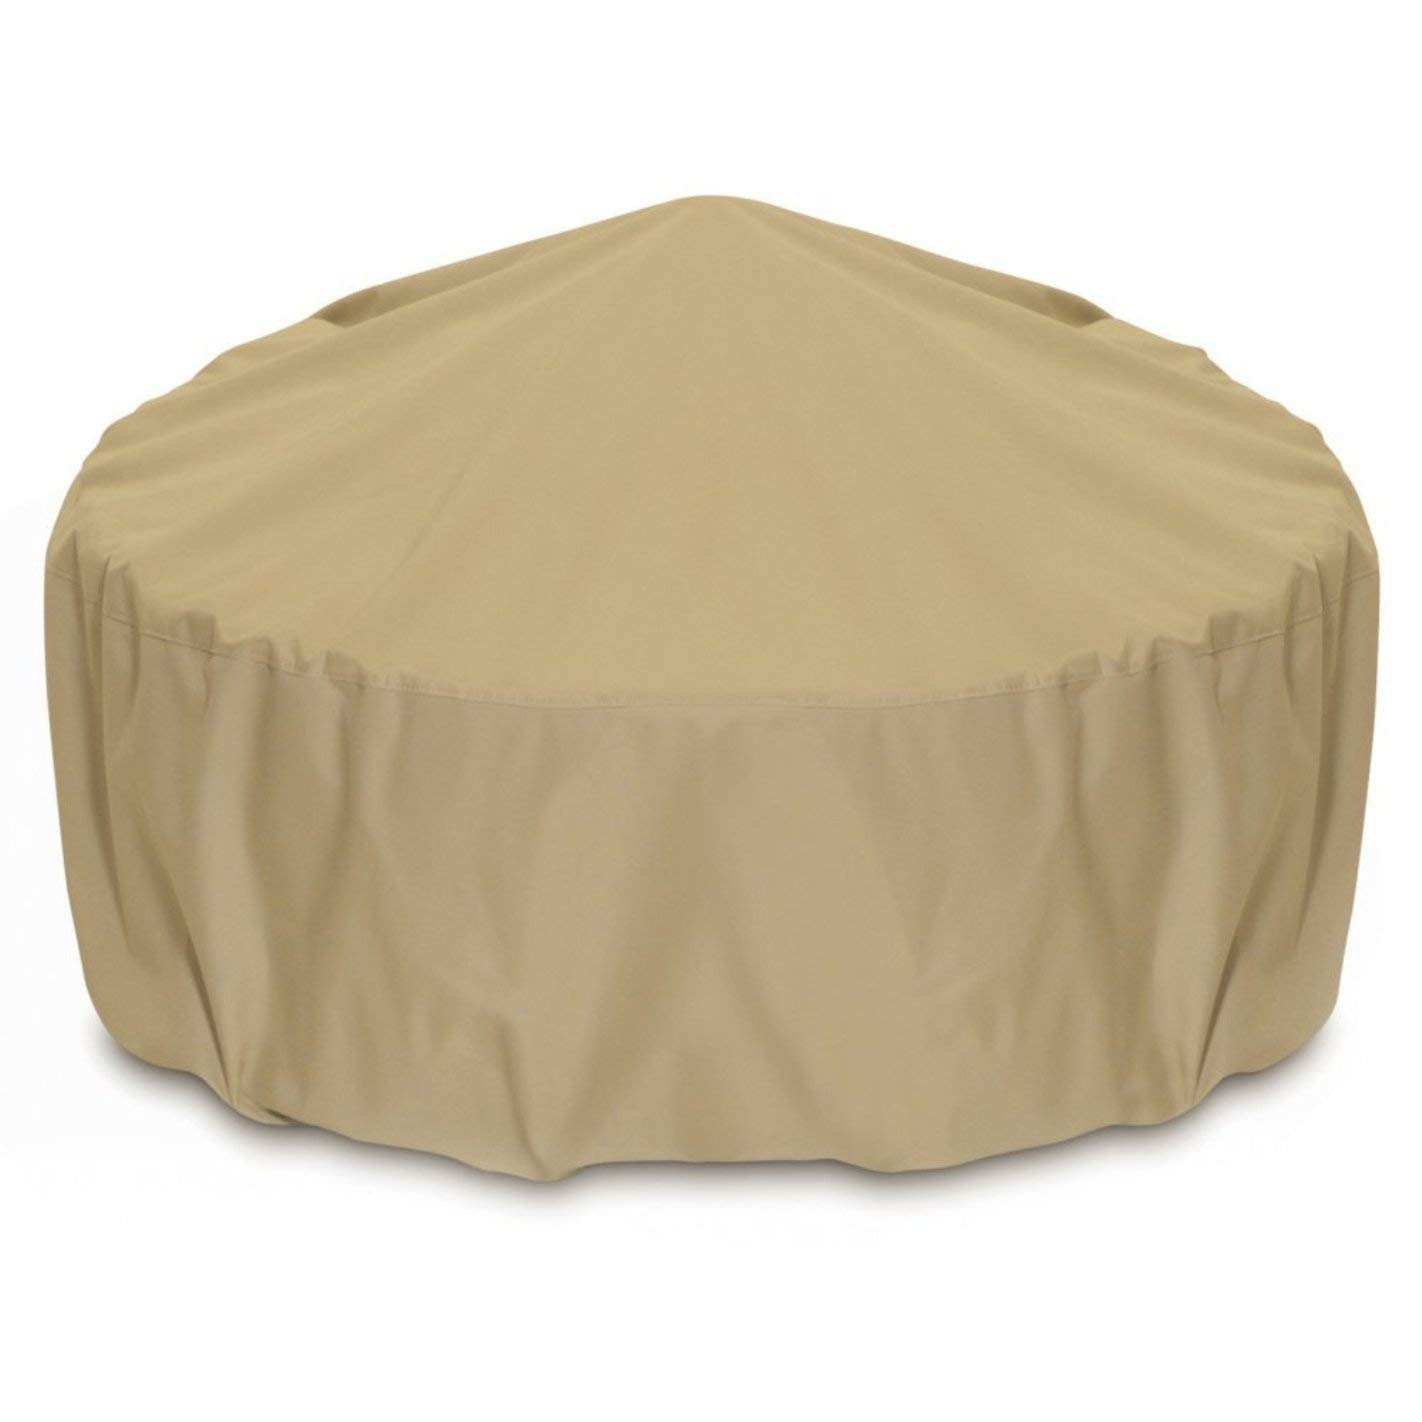 Two Dogs Designs 2D-FP80005 Fire Pit Cover With Level 4 UV Protection, 80-Inch, Khaki by Two Dogs Designs